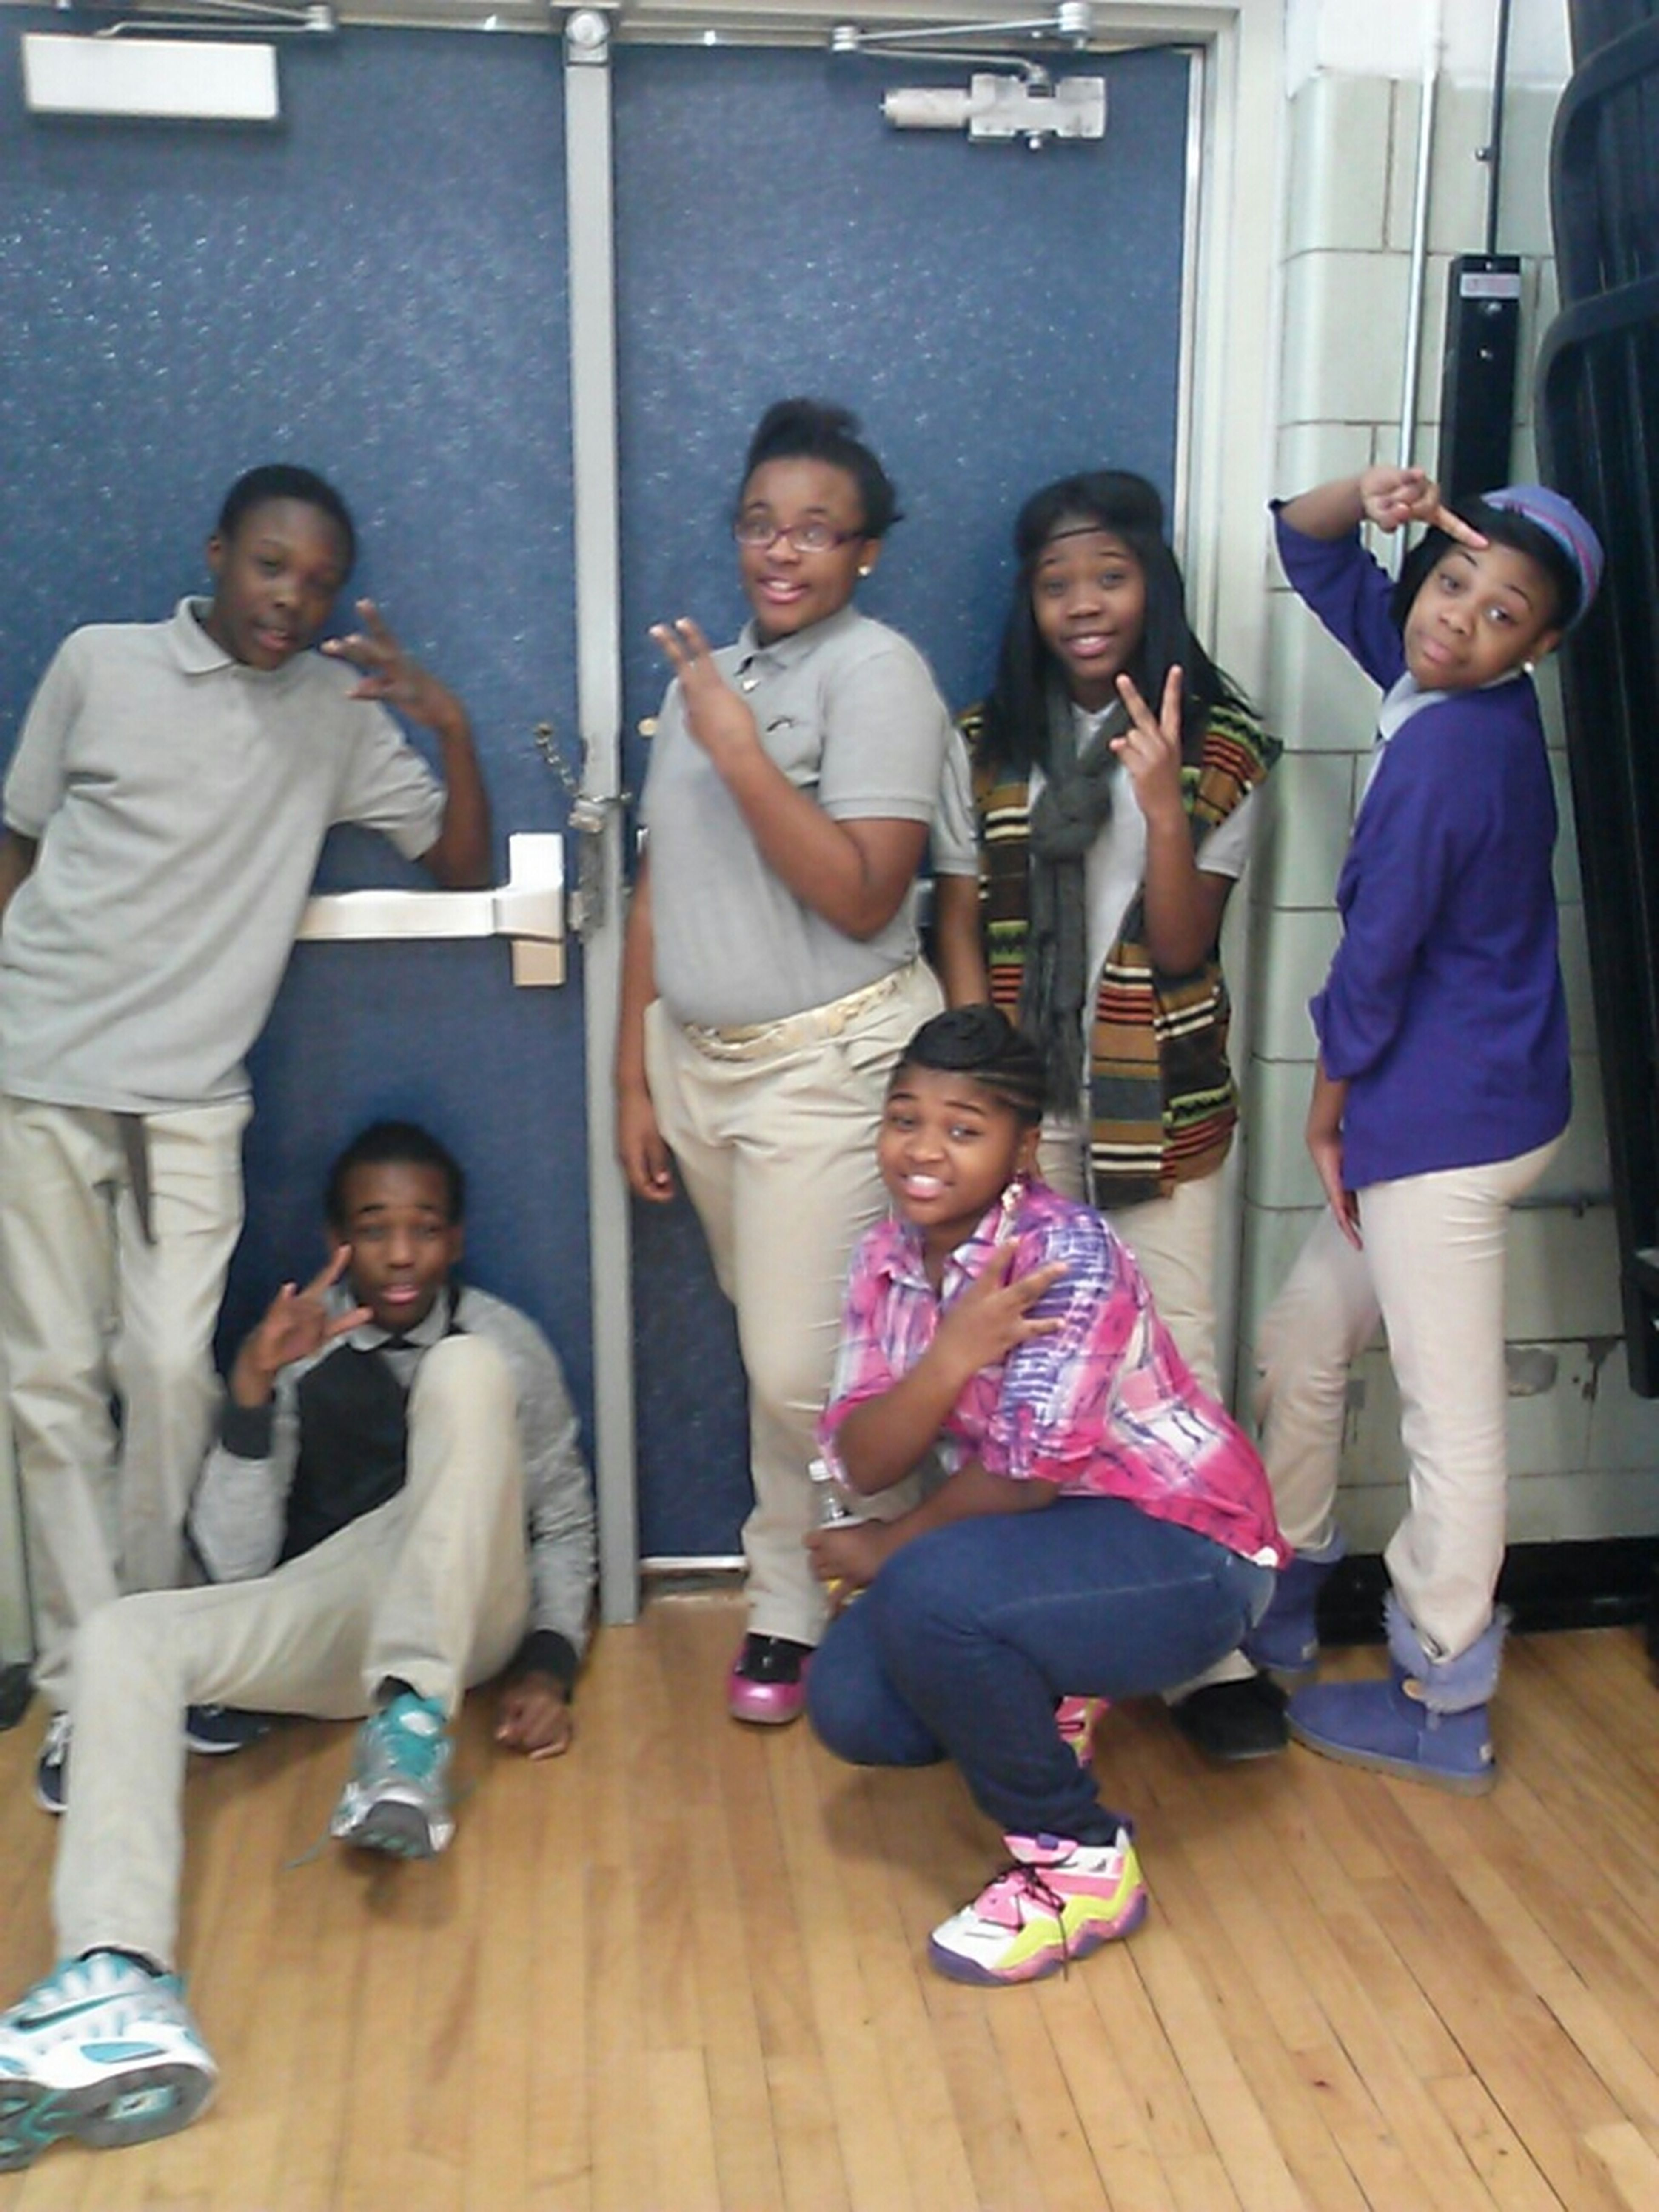 #us Coolin It In Gym